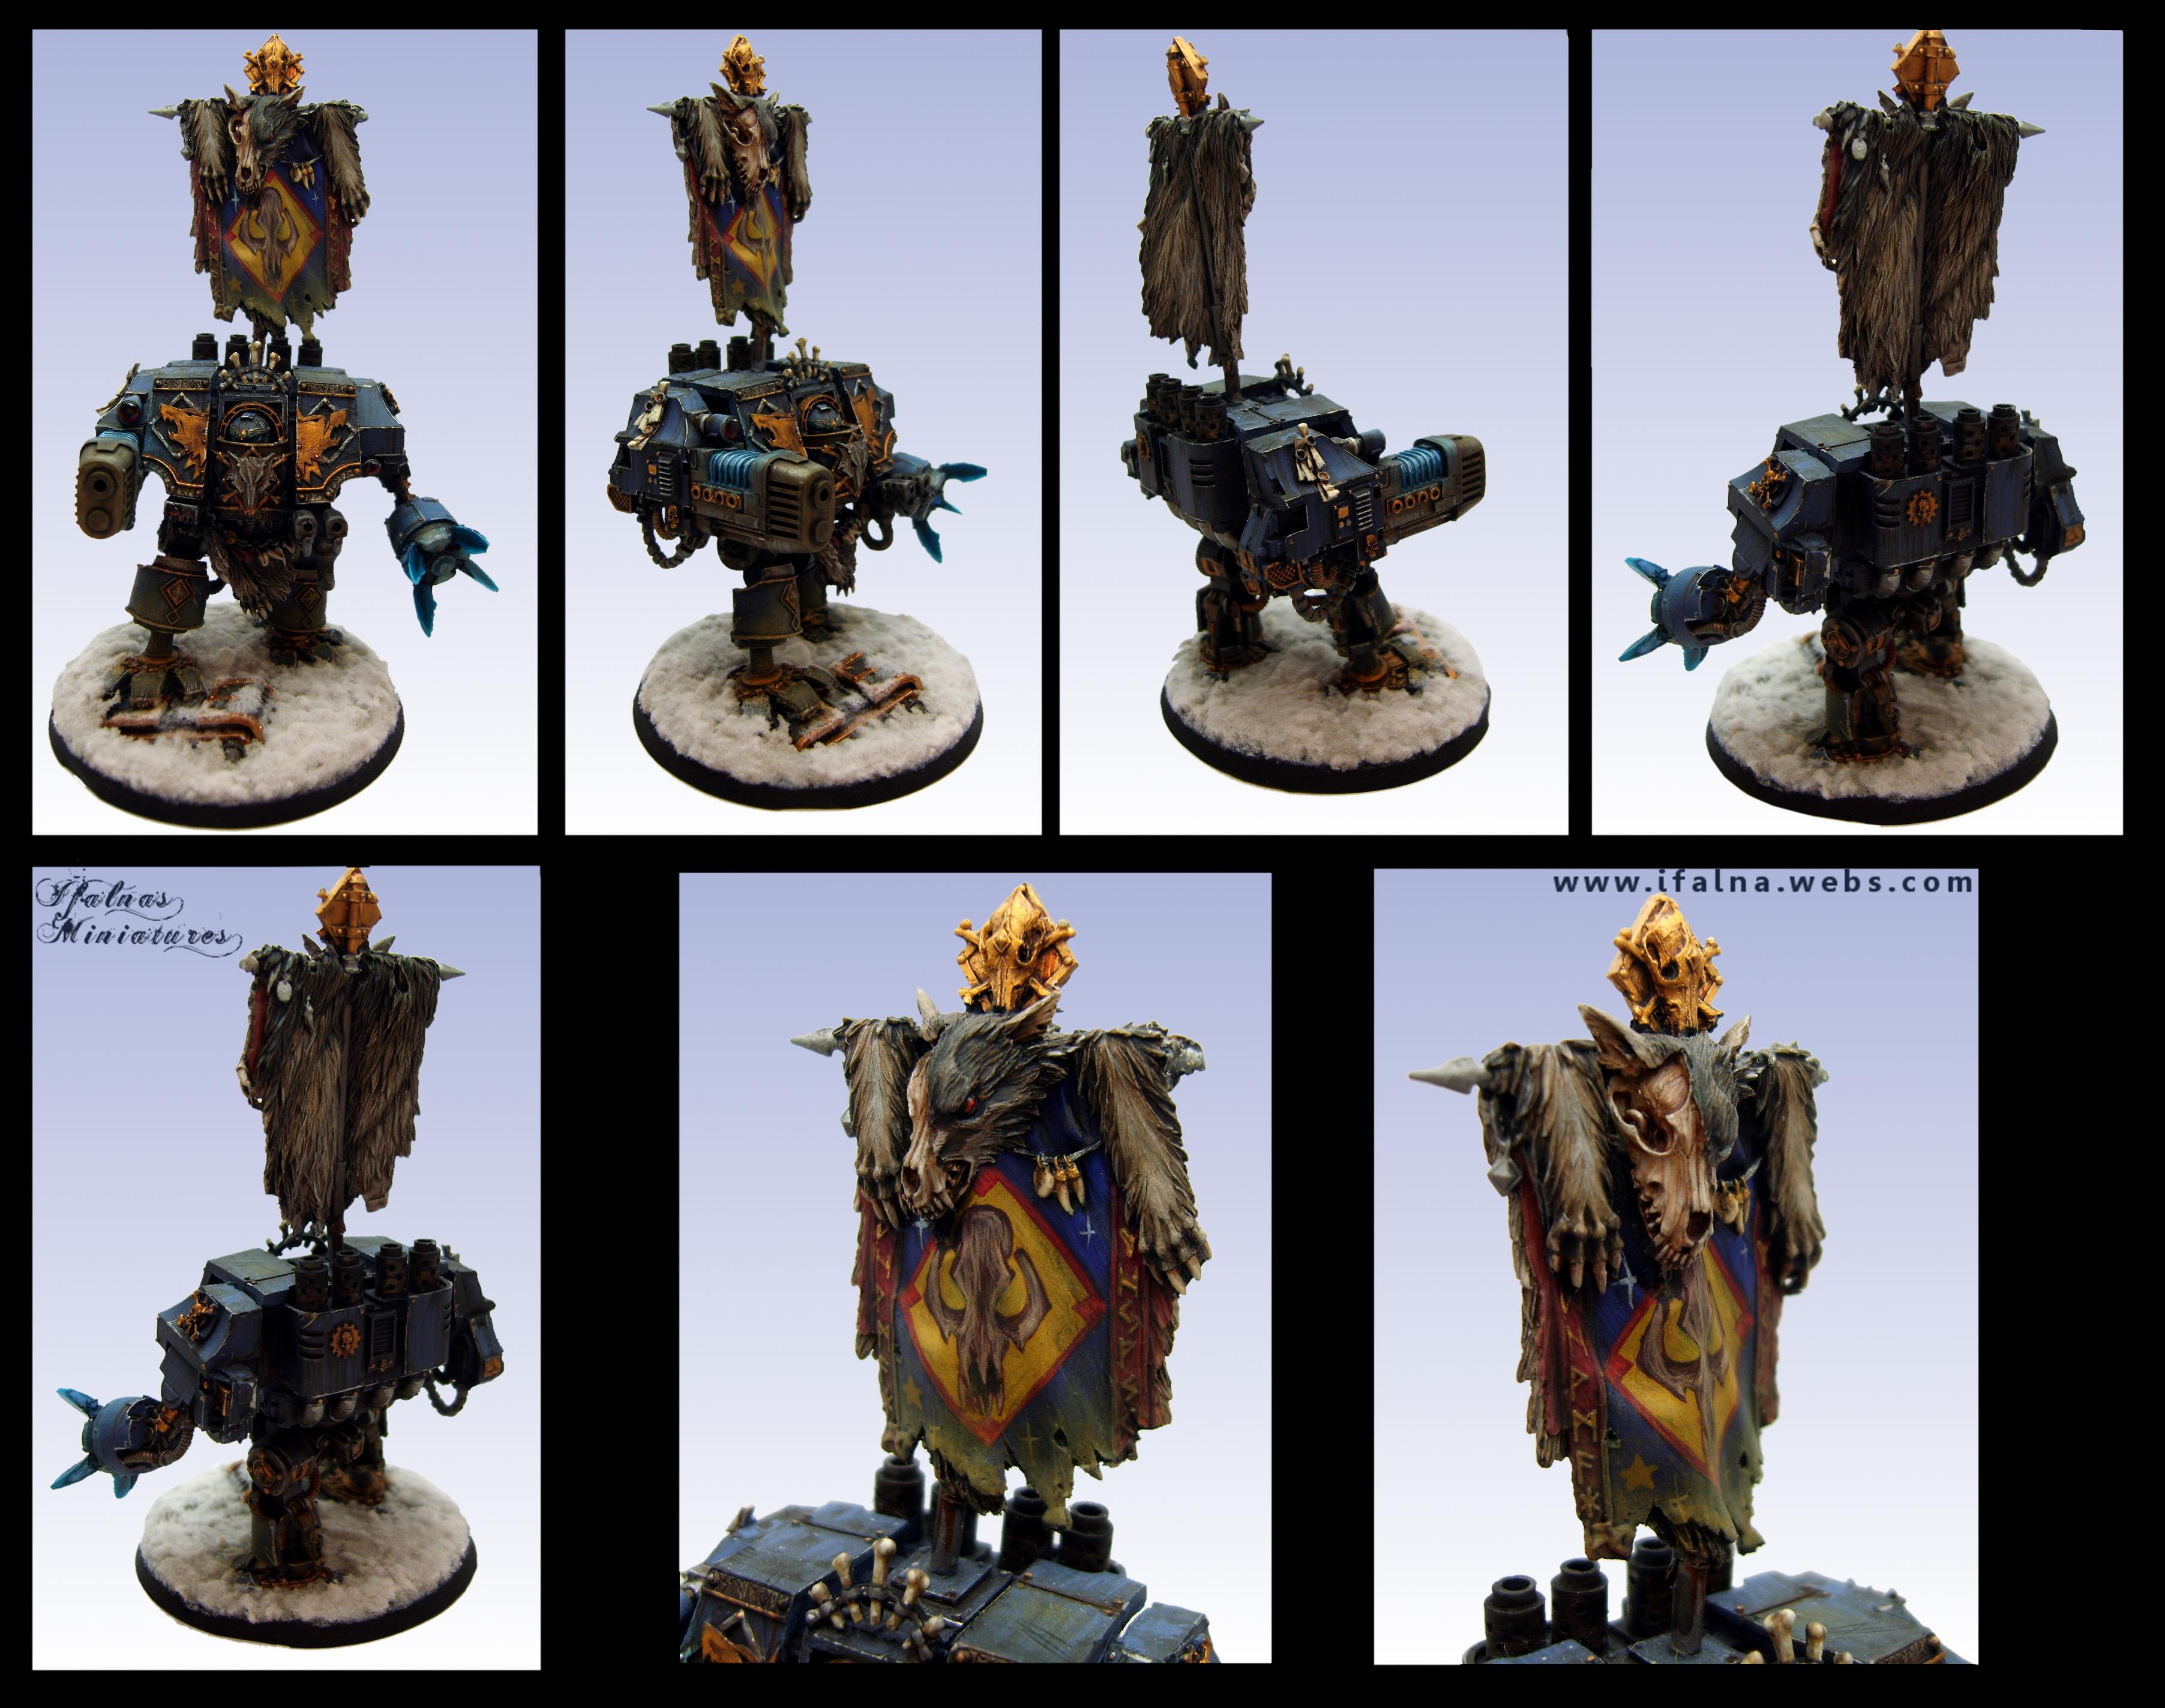 Airbrush, Banner, Bjorn, Conversion, Dreadnought, Dred, Snow, Space Marines, Space Wolves, Warhammer 40,000, Warhammer Fantasy, Weathered